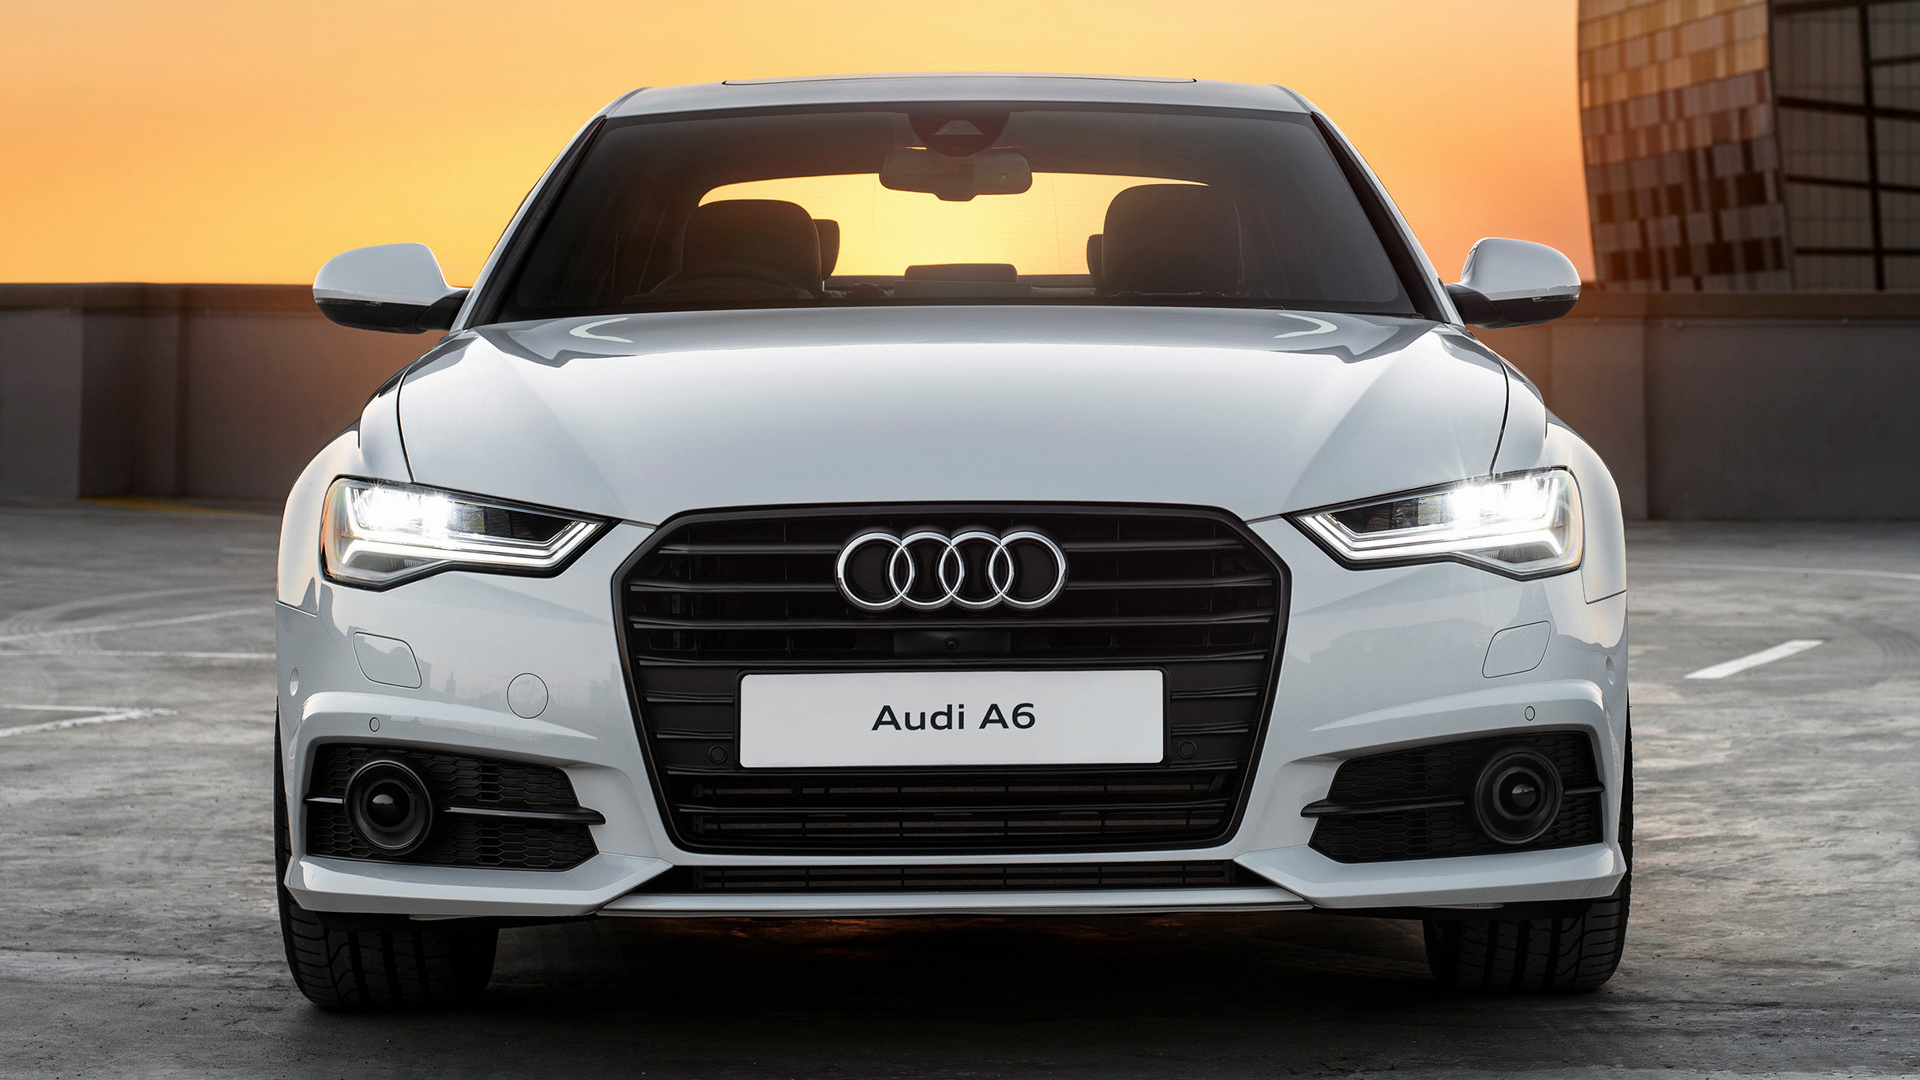 2015 Audi A6 Sedan S line (ZA) - Wallpapers and HD Images ...